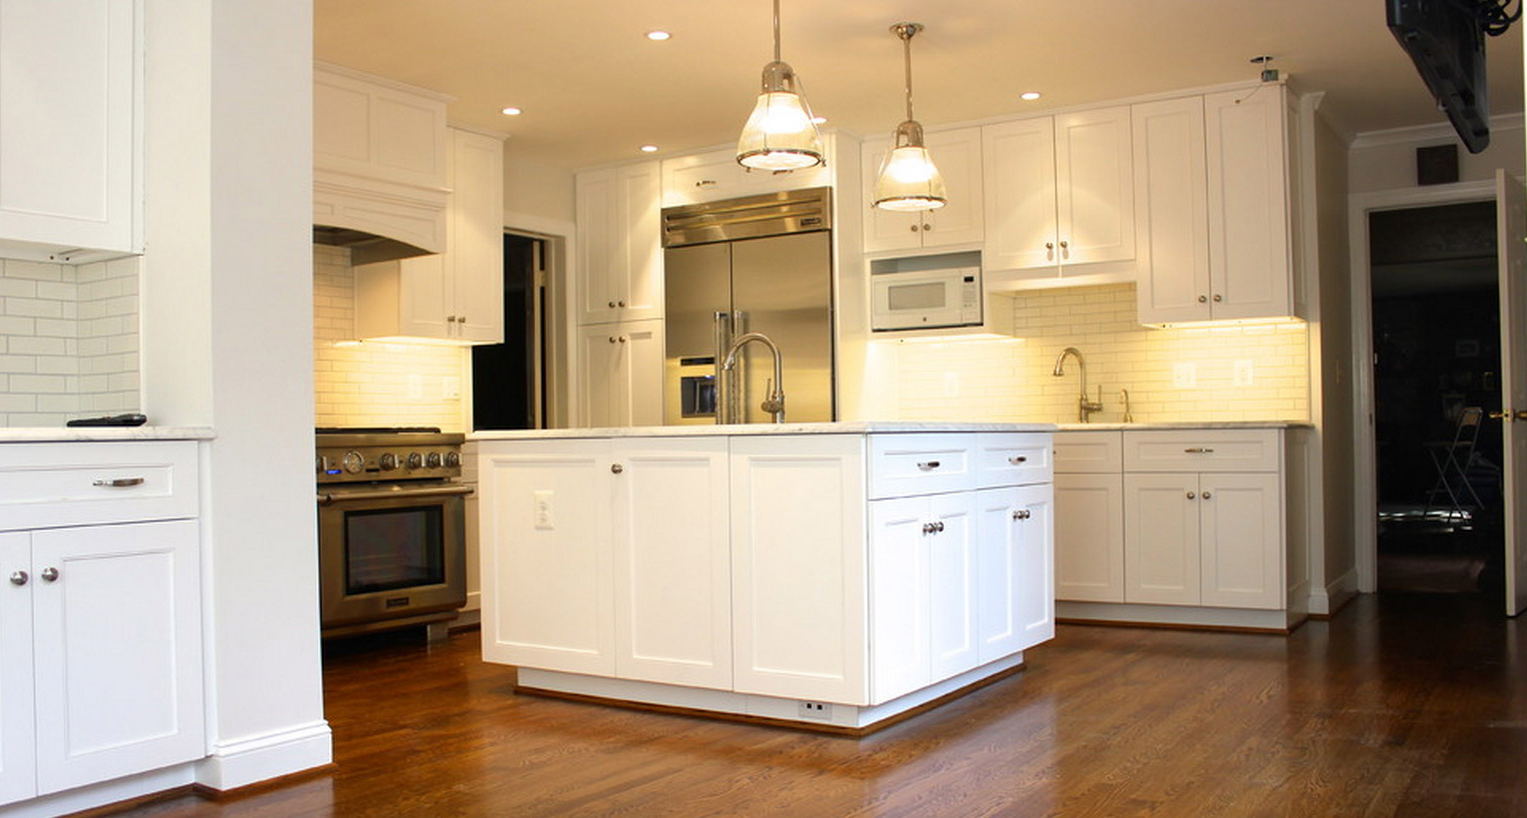 Kitchen remodeling at its best northern va dc md How much to build a house in northern virginia